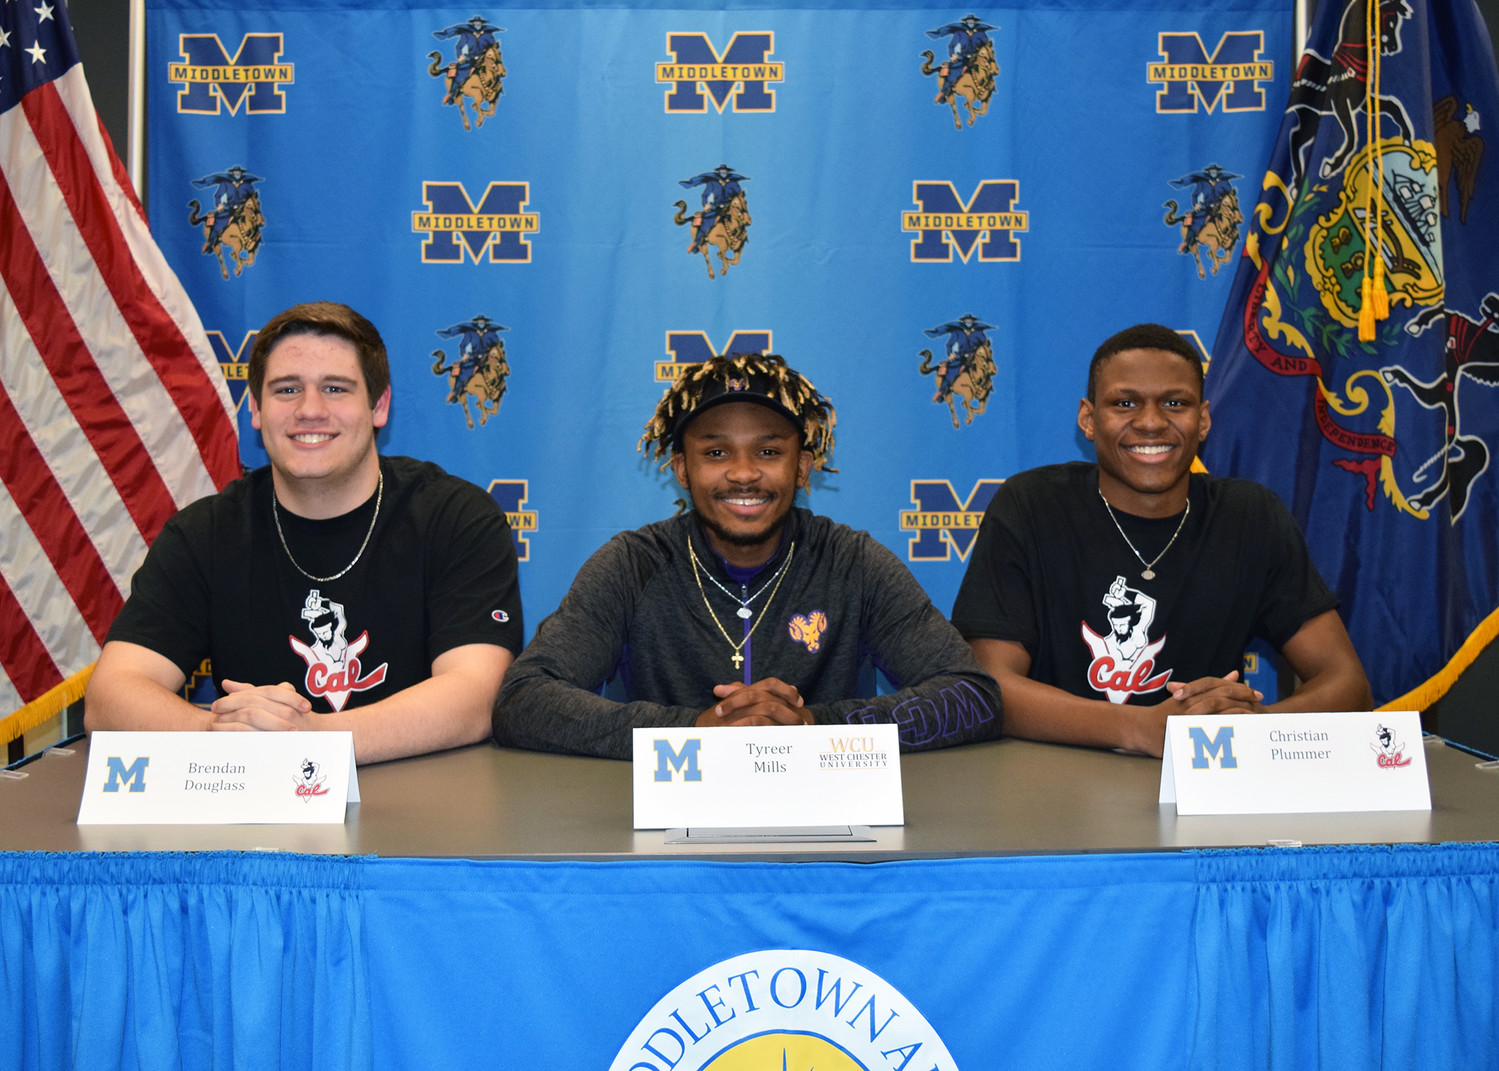 Middletown's Brendan Douglass, Tyreer Mills and Chris Plummer plan to continue their football careers in college.